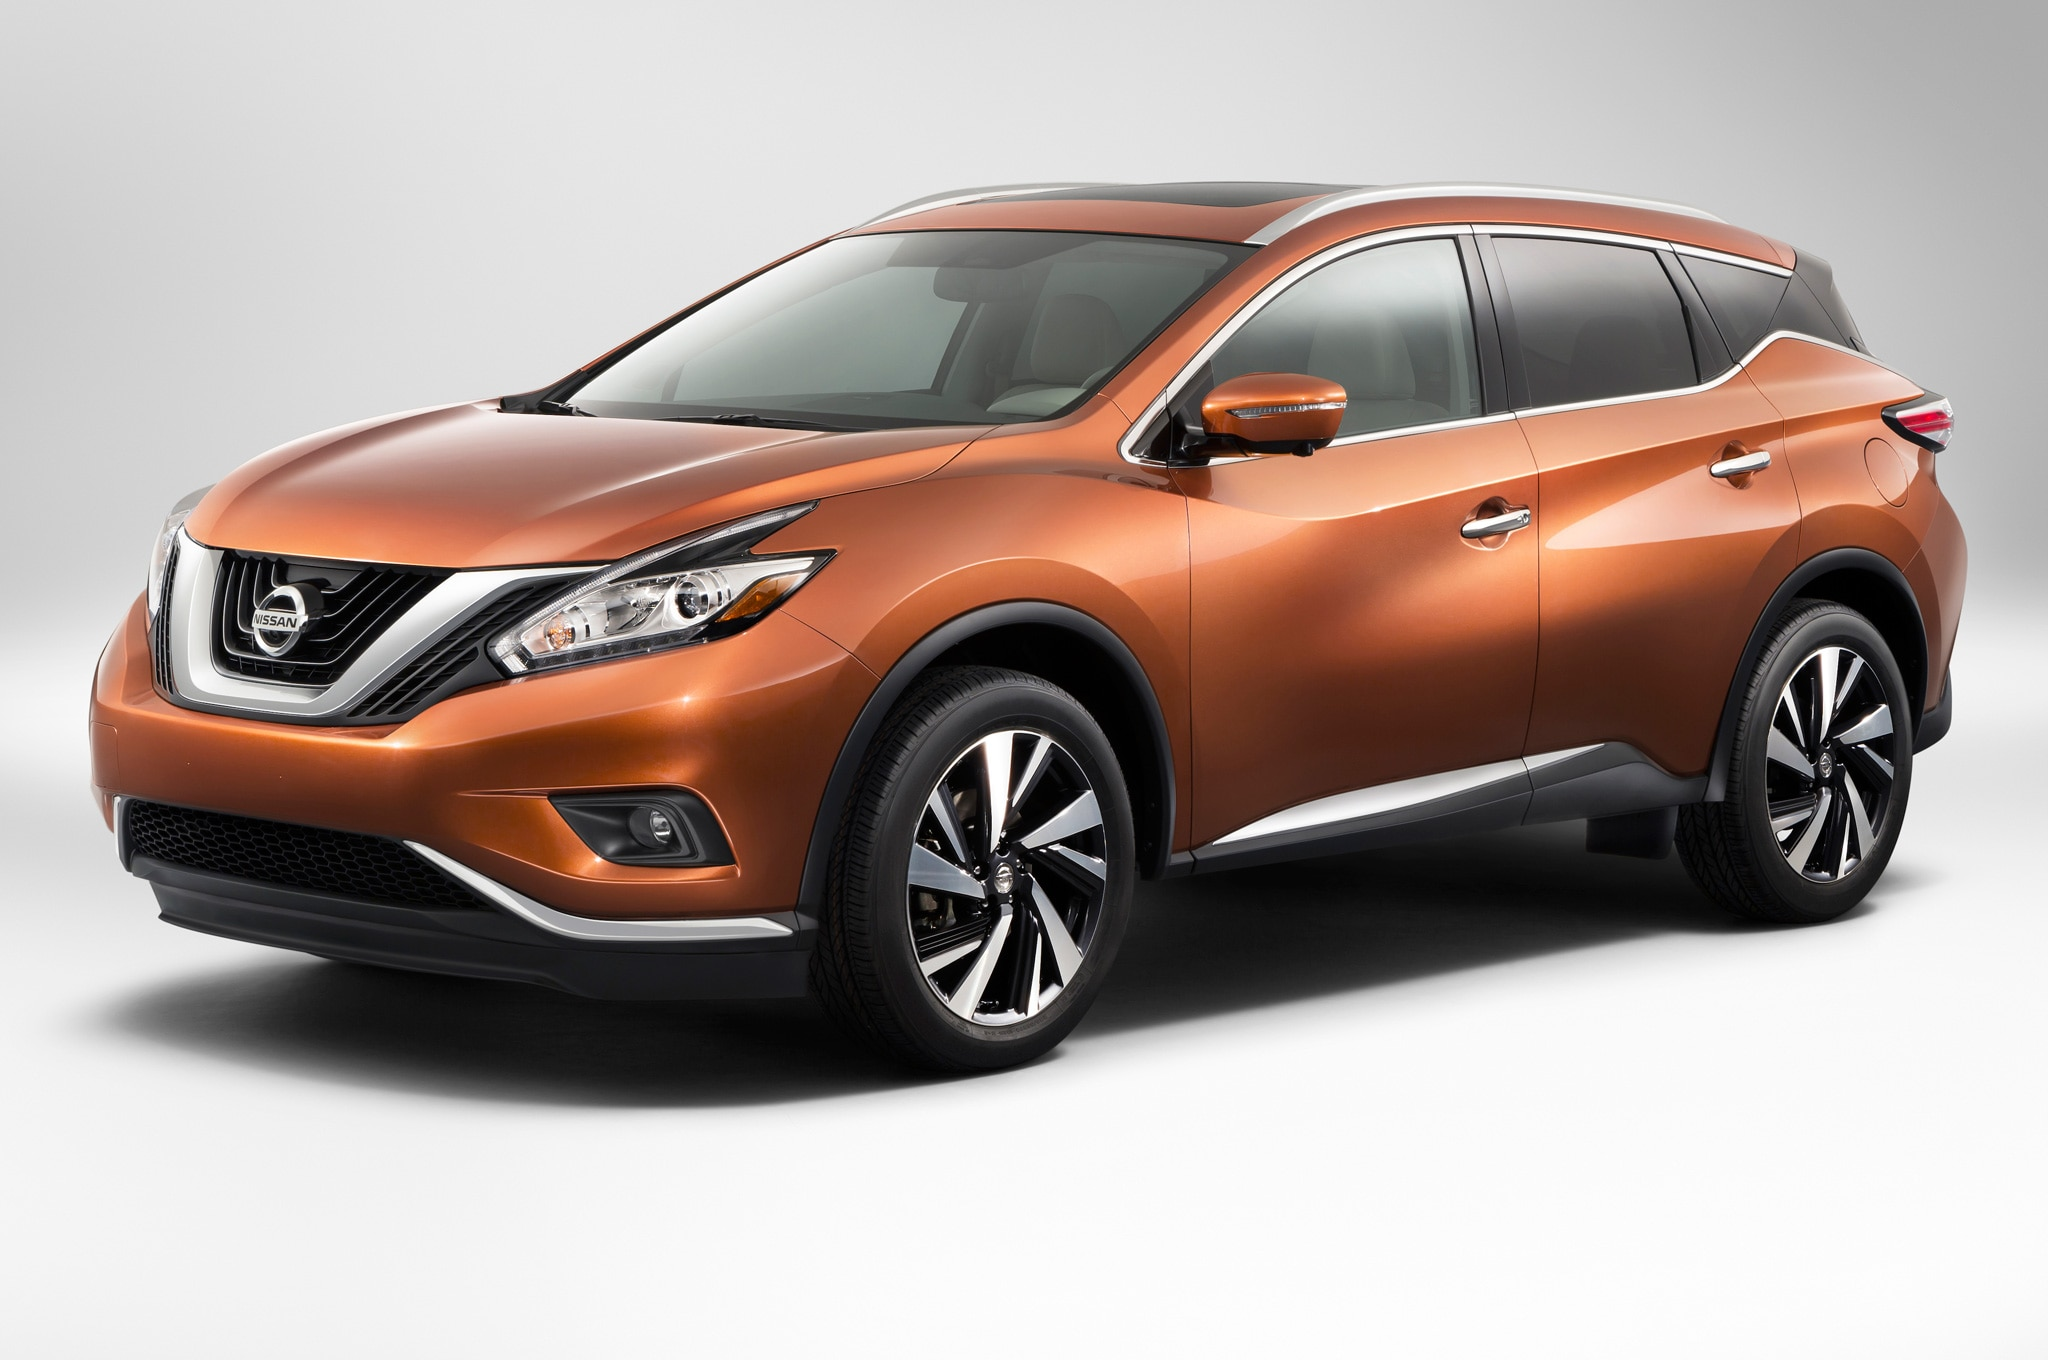 2015 Nissan Murano Front Side View1